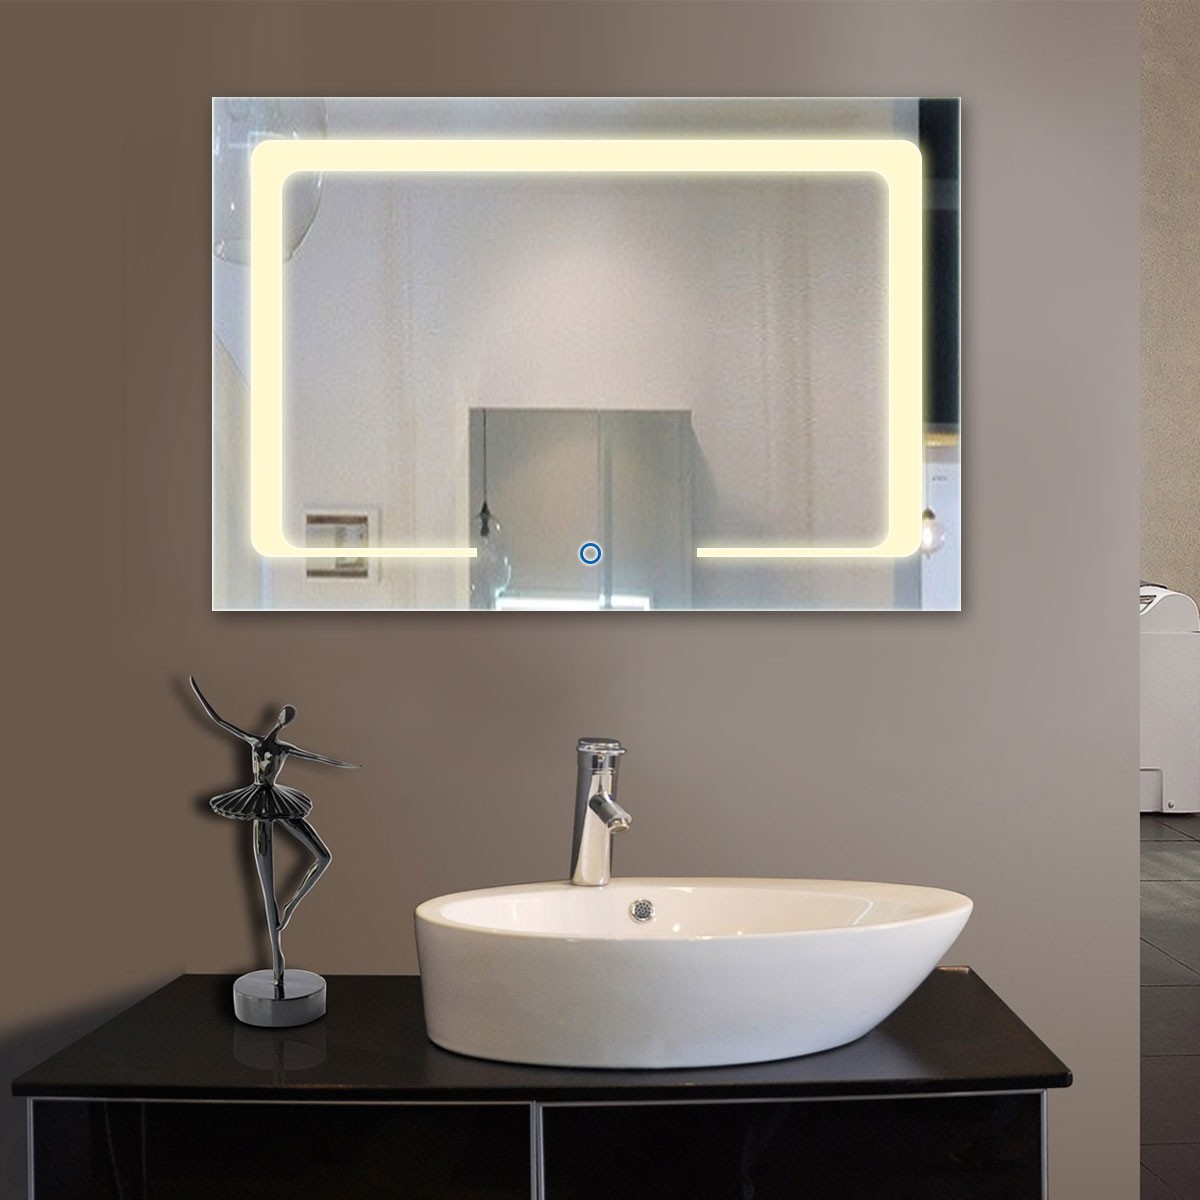 36 x 28 in horizontal led bathroom silvered mirror with touch button dk od cl129 decoraport. Black Bedroom Furniture Sets. Home Design Ideas